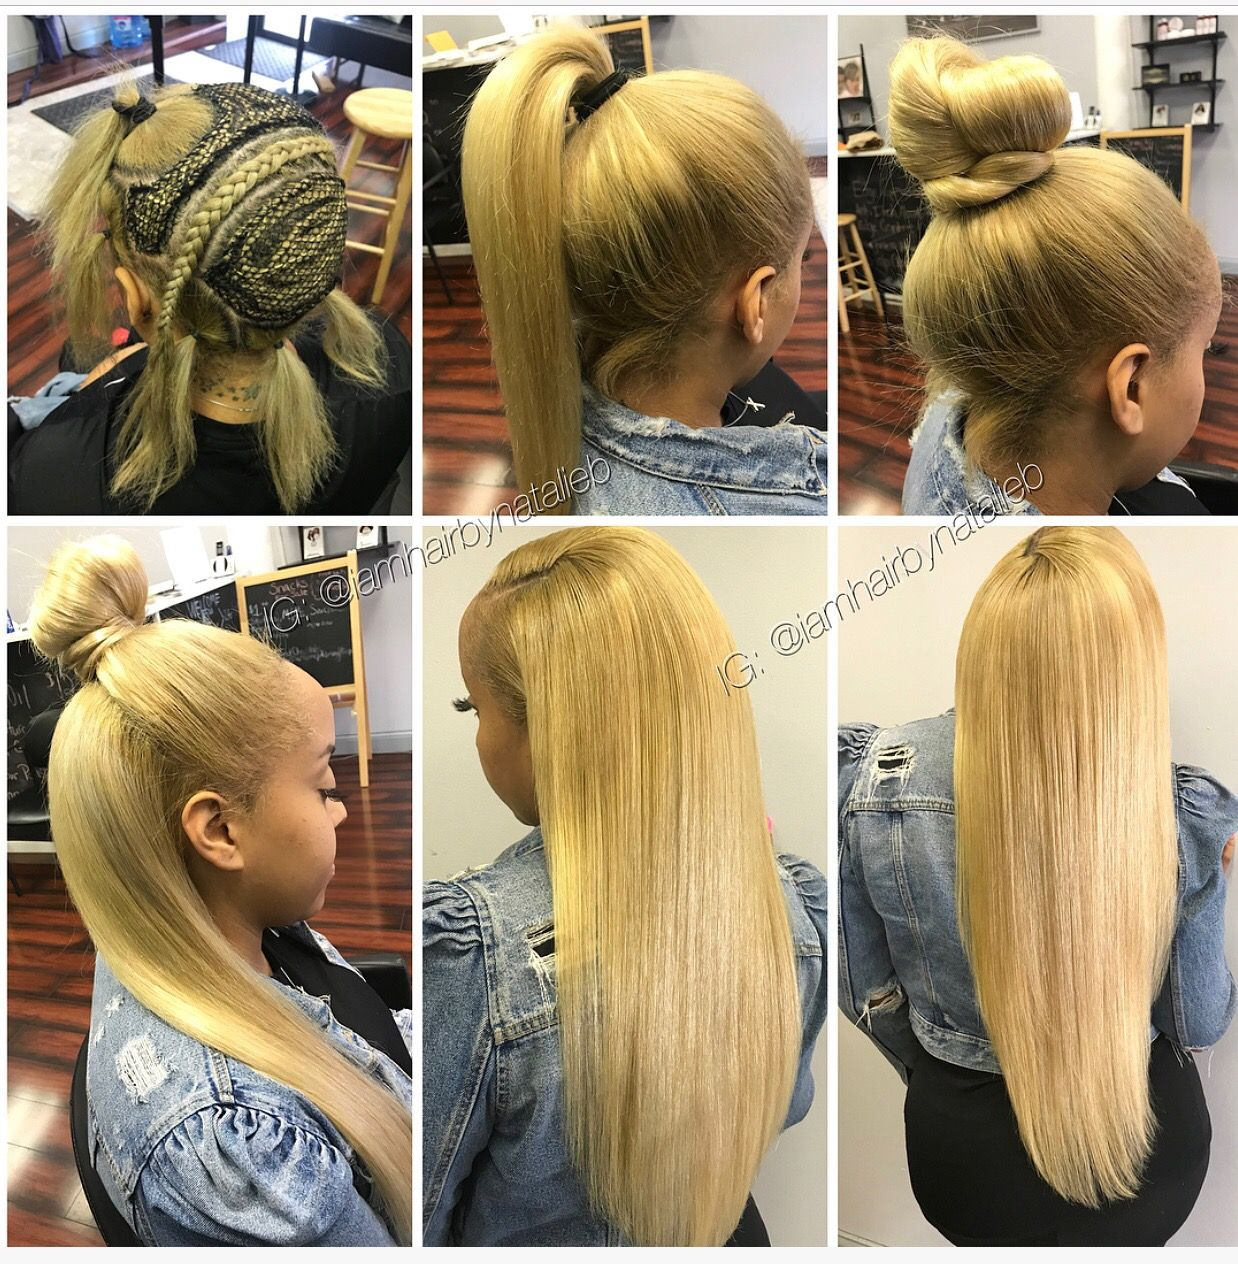 Check Out My New Four Way Sew In Hair Weave This Sew In Lets You Wear Your Hair In Almost Any Style A Sew In Hair Extensions Weave Hairstyles Blonde Weave